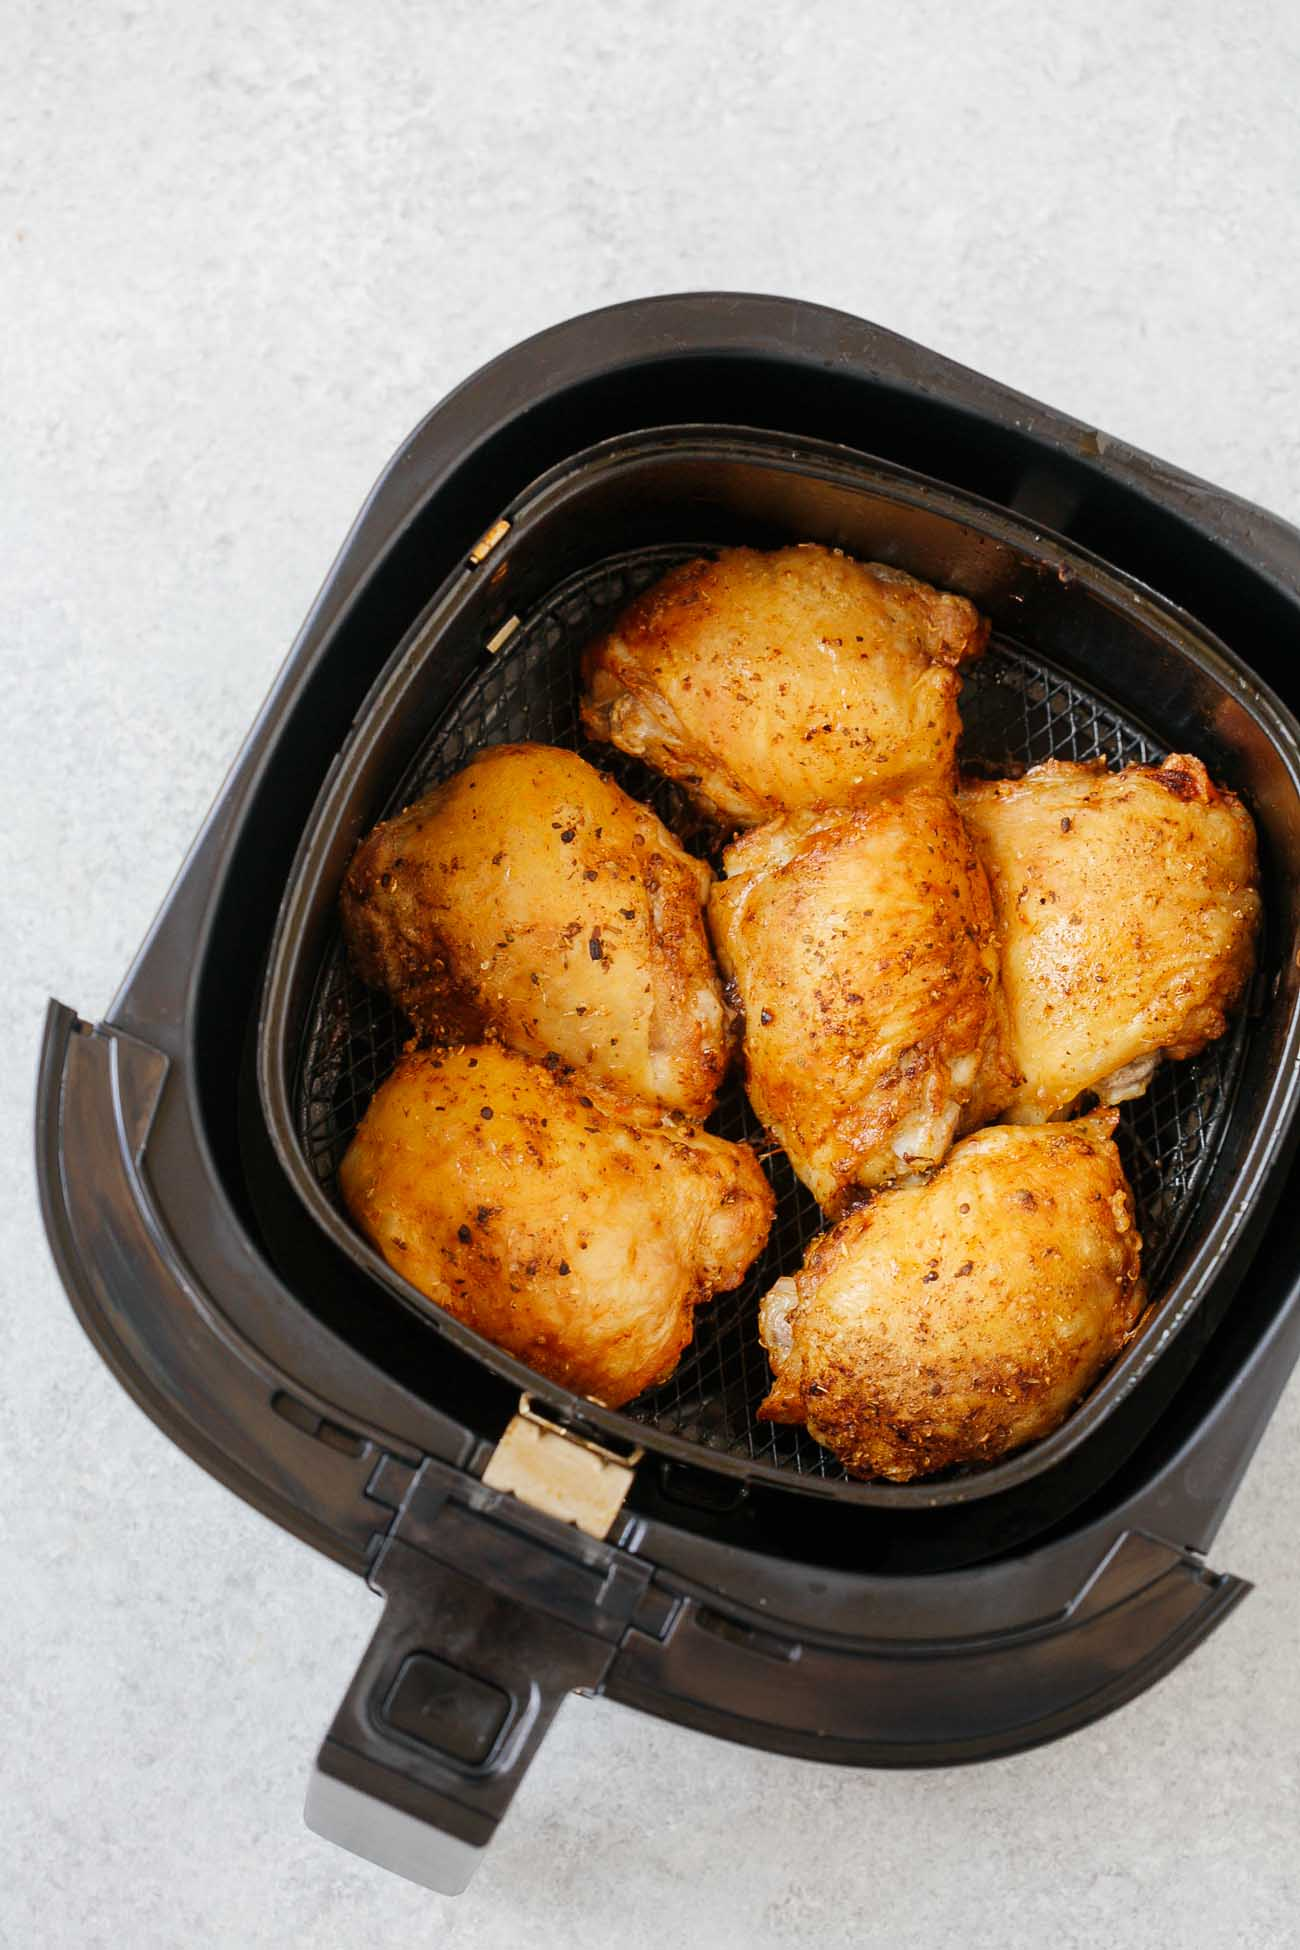 overhead view of cooked chicken thighs inside of an air fryer basket.